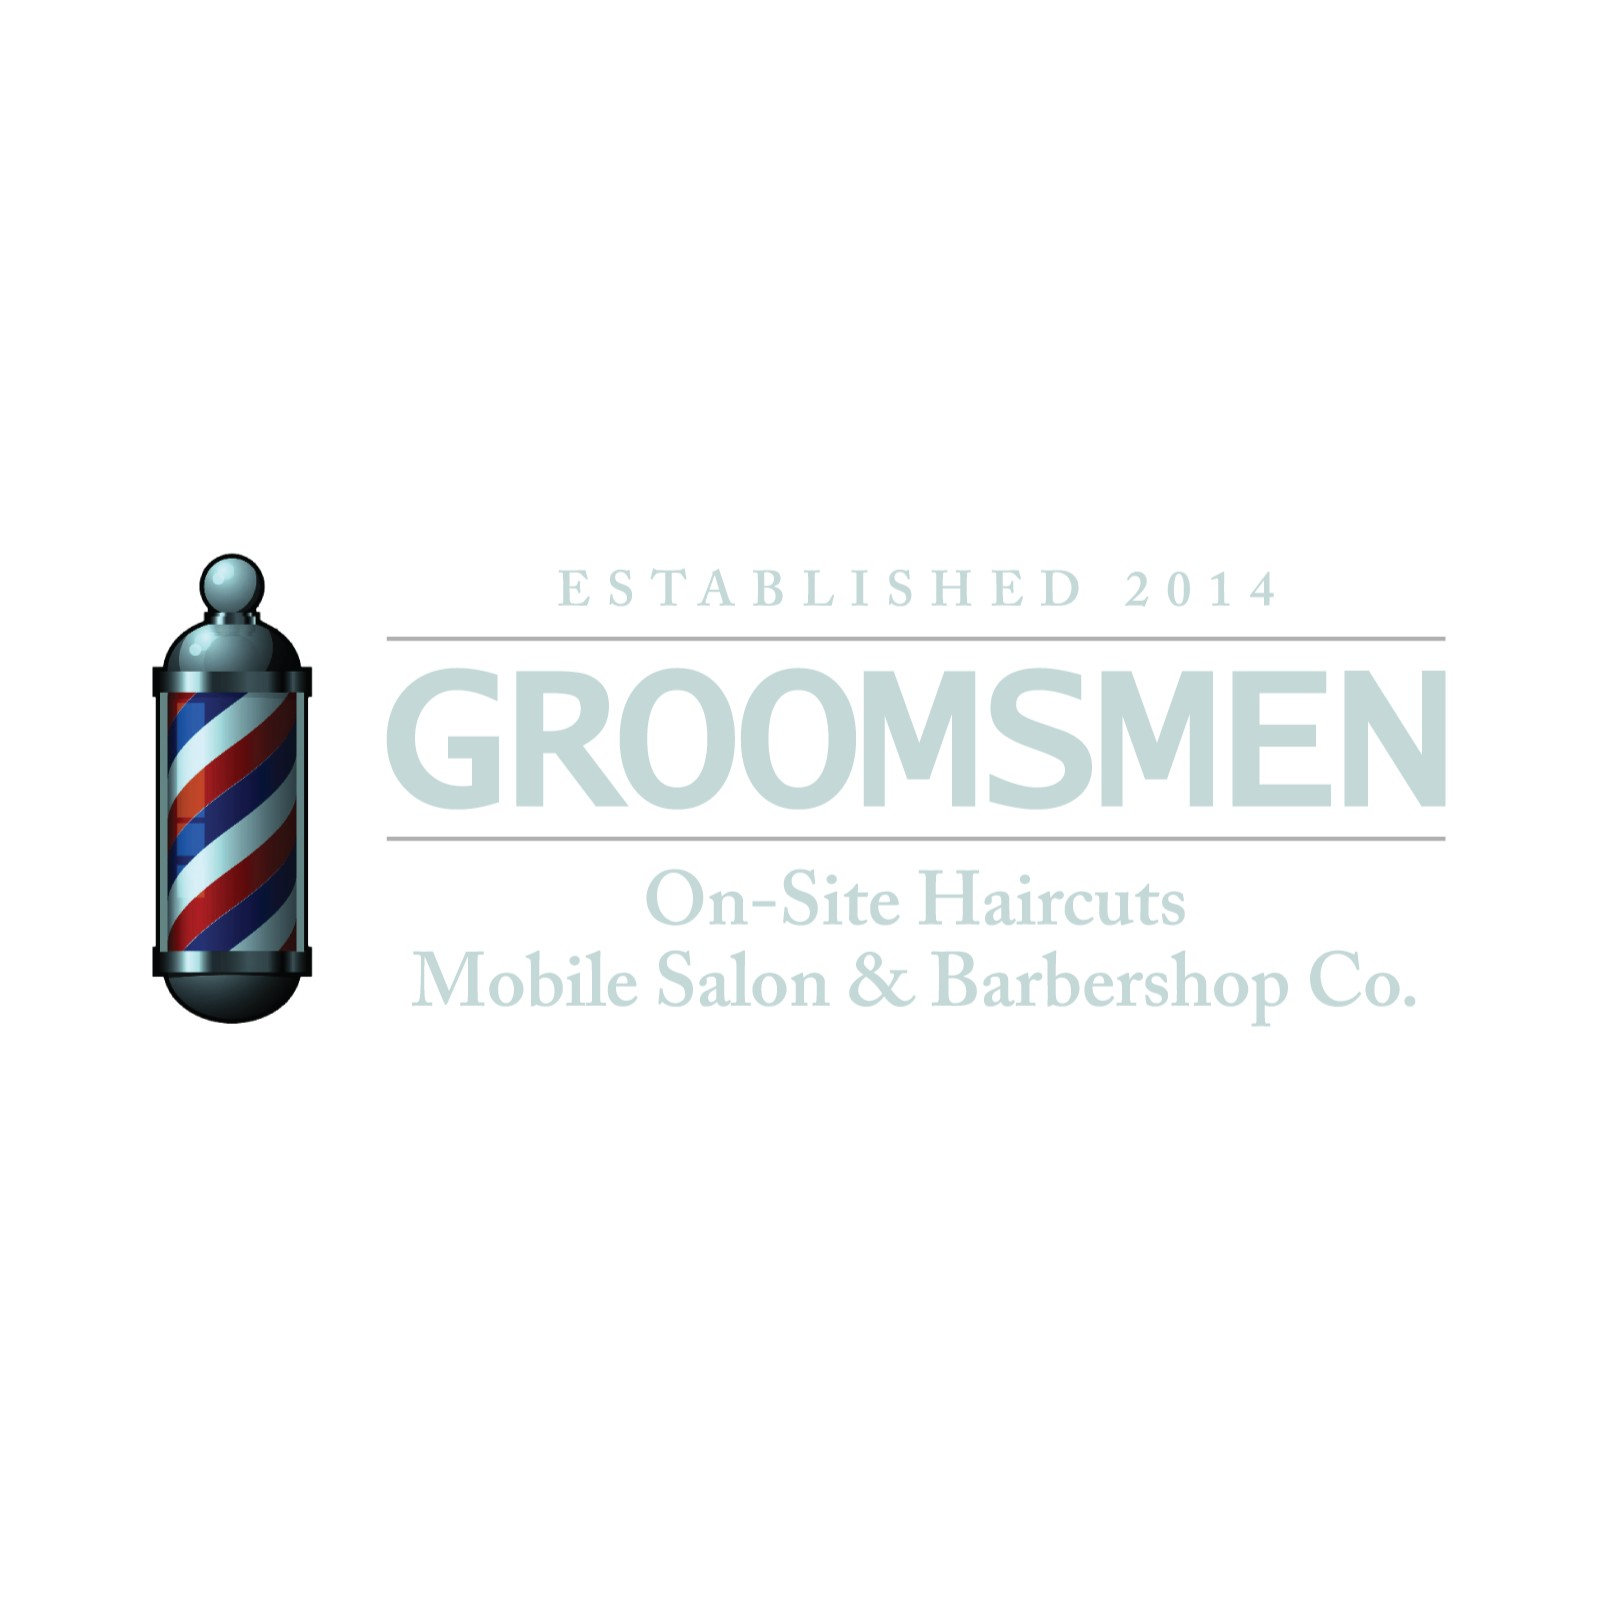 GROOMSMEN On-Site Haircuts, Mobile Salon & Barbershop Co.